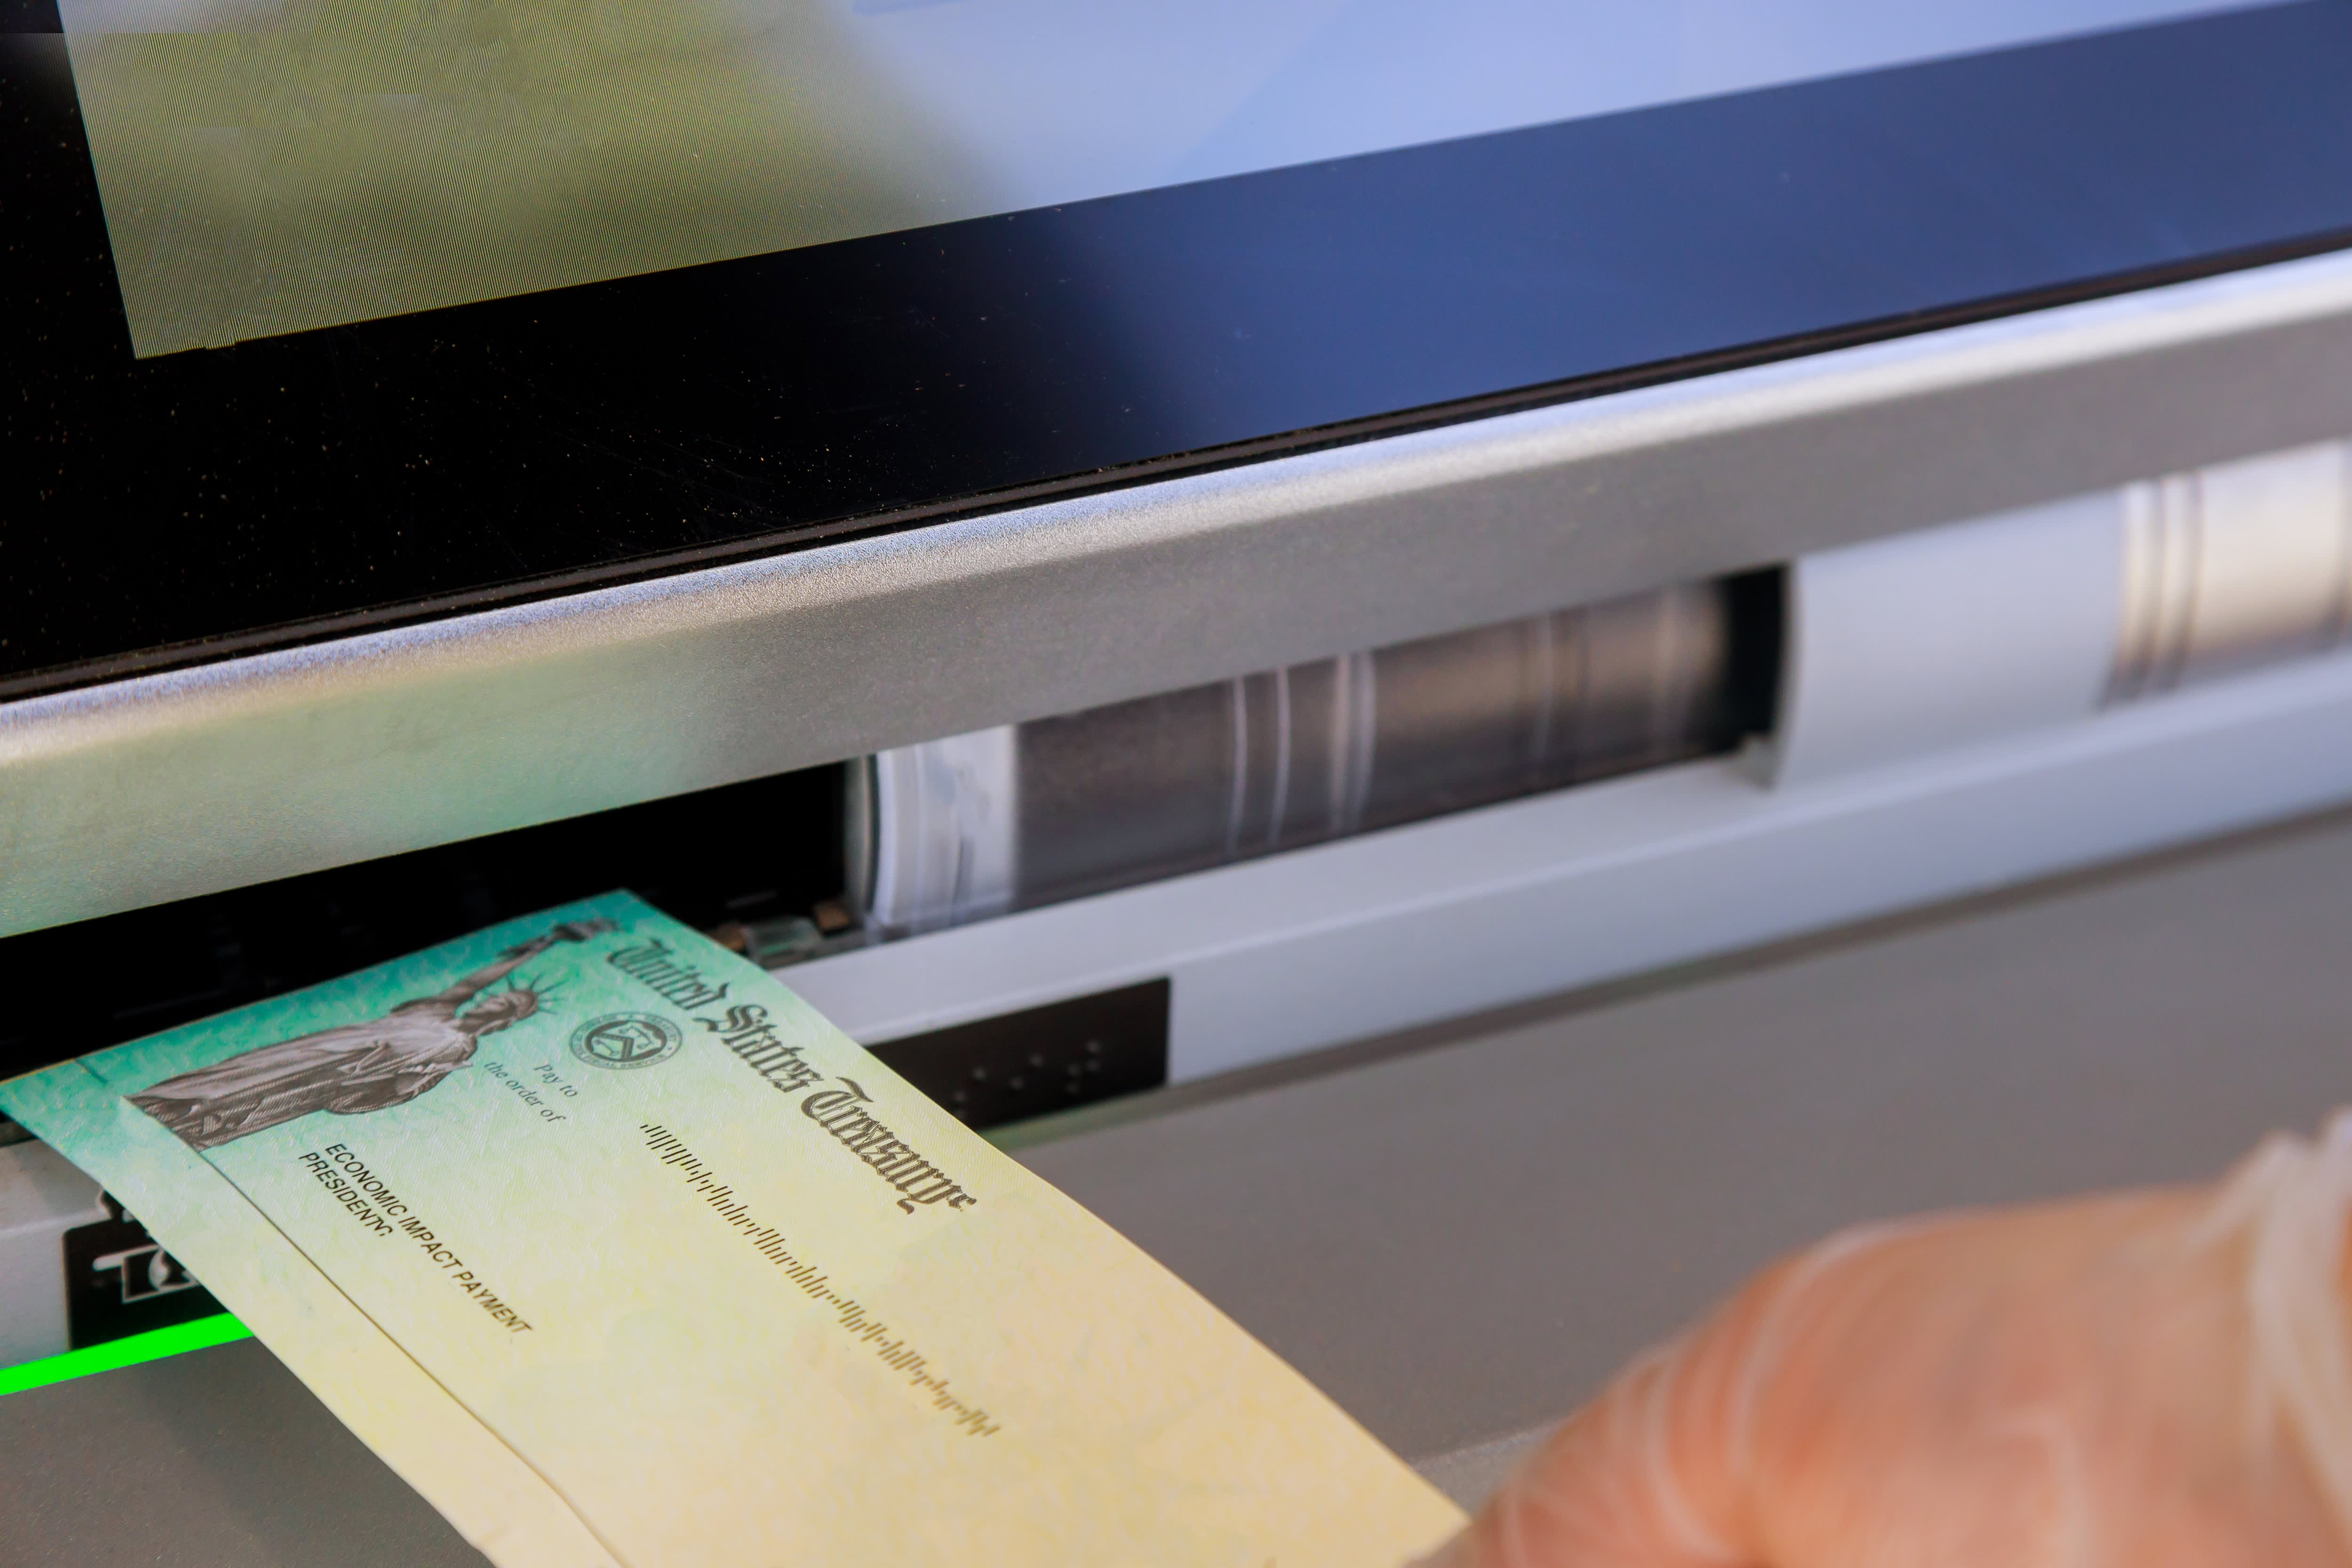 $600 stimulus checks are officially on the way. Here's who will get them first